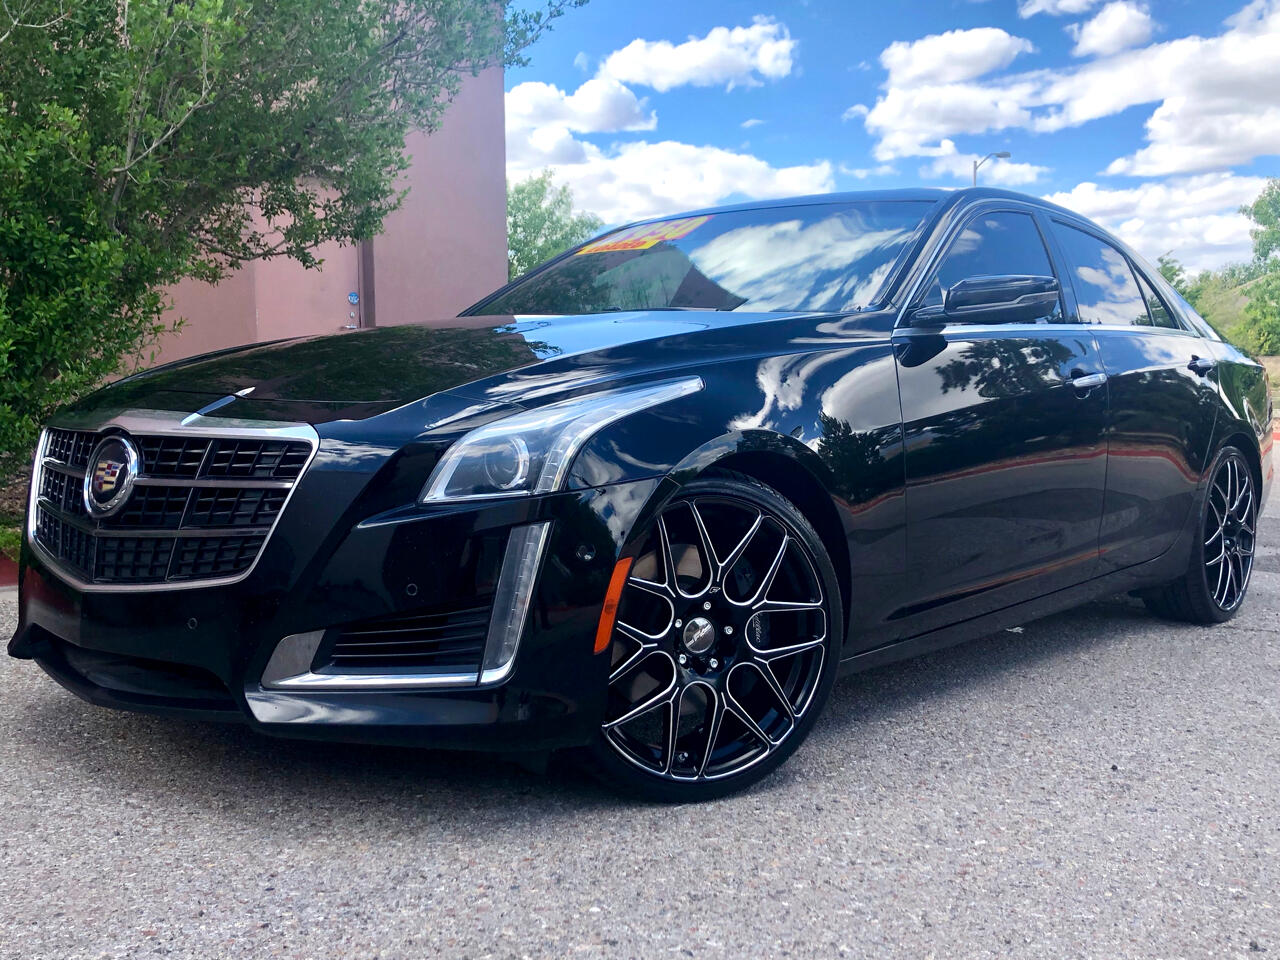 2014 Cadillac CTS Sedan 4dr Sdn 3.6L Twin Turbo Vsport Premium RWD